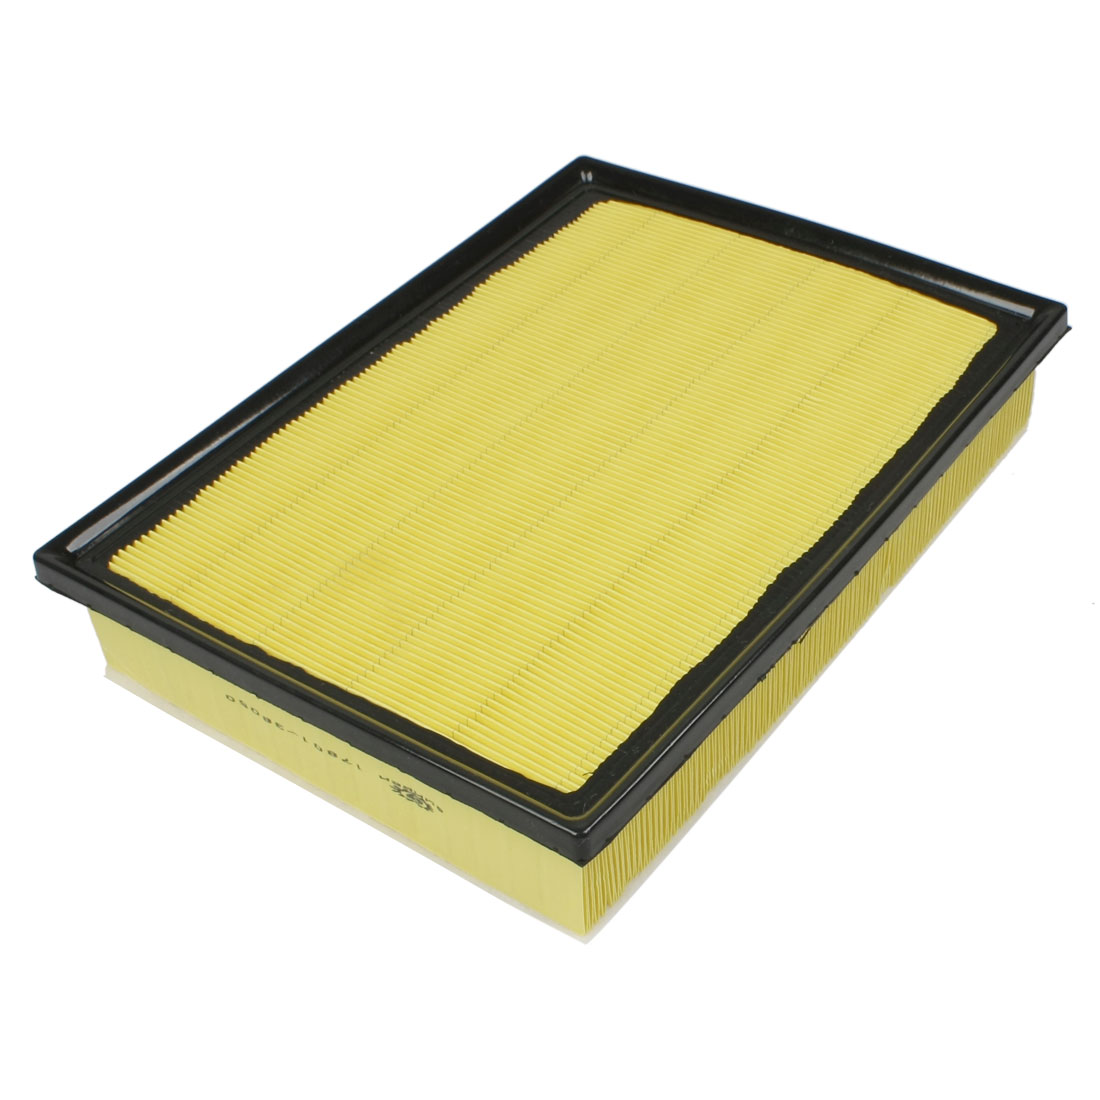 Replacement Vehicle Car Auto Engine Air Filter Black Yellow 17801-38050